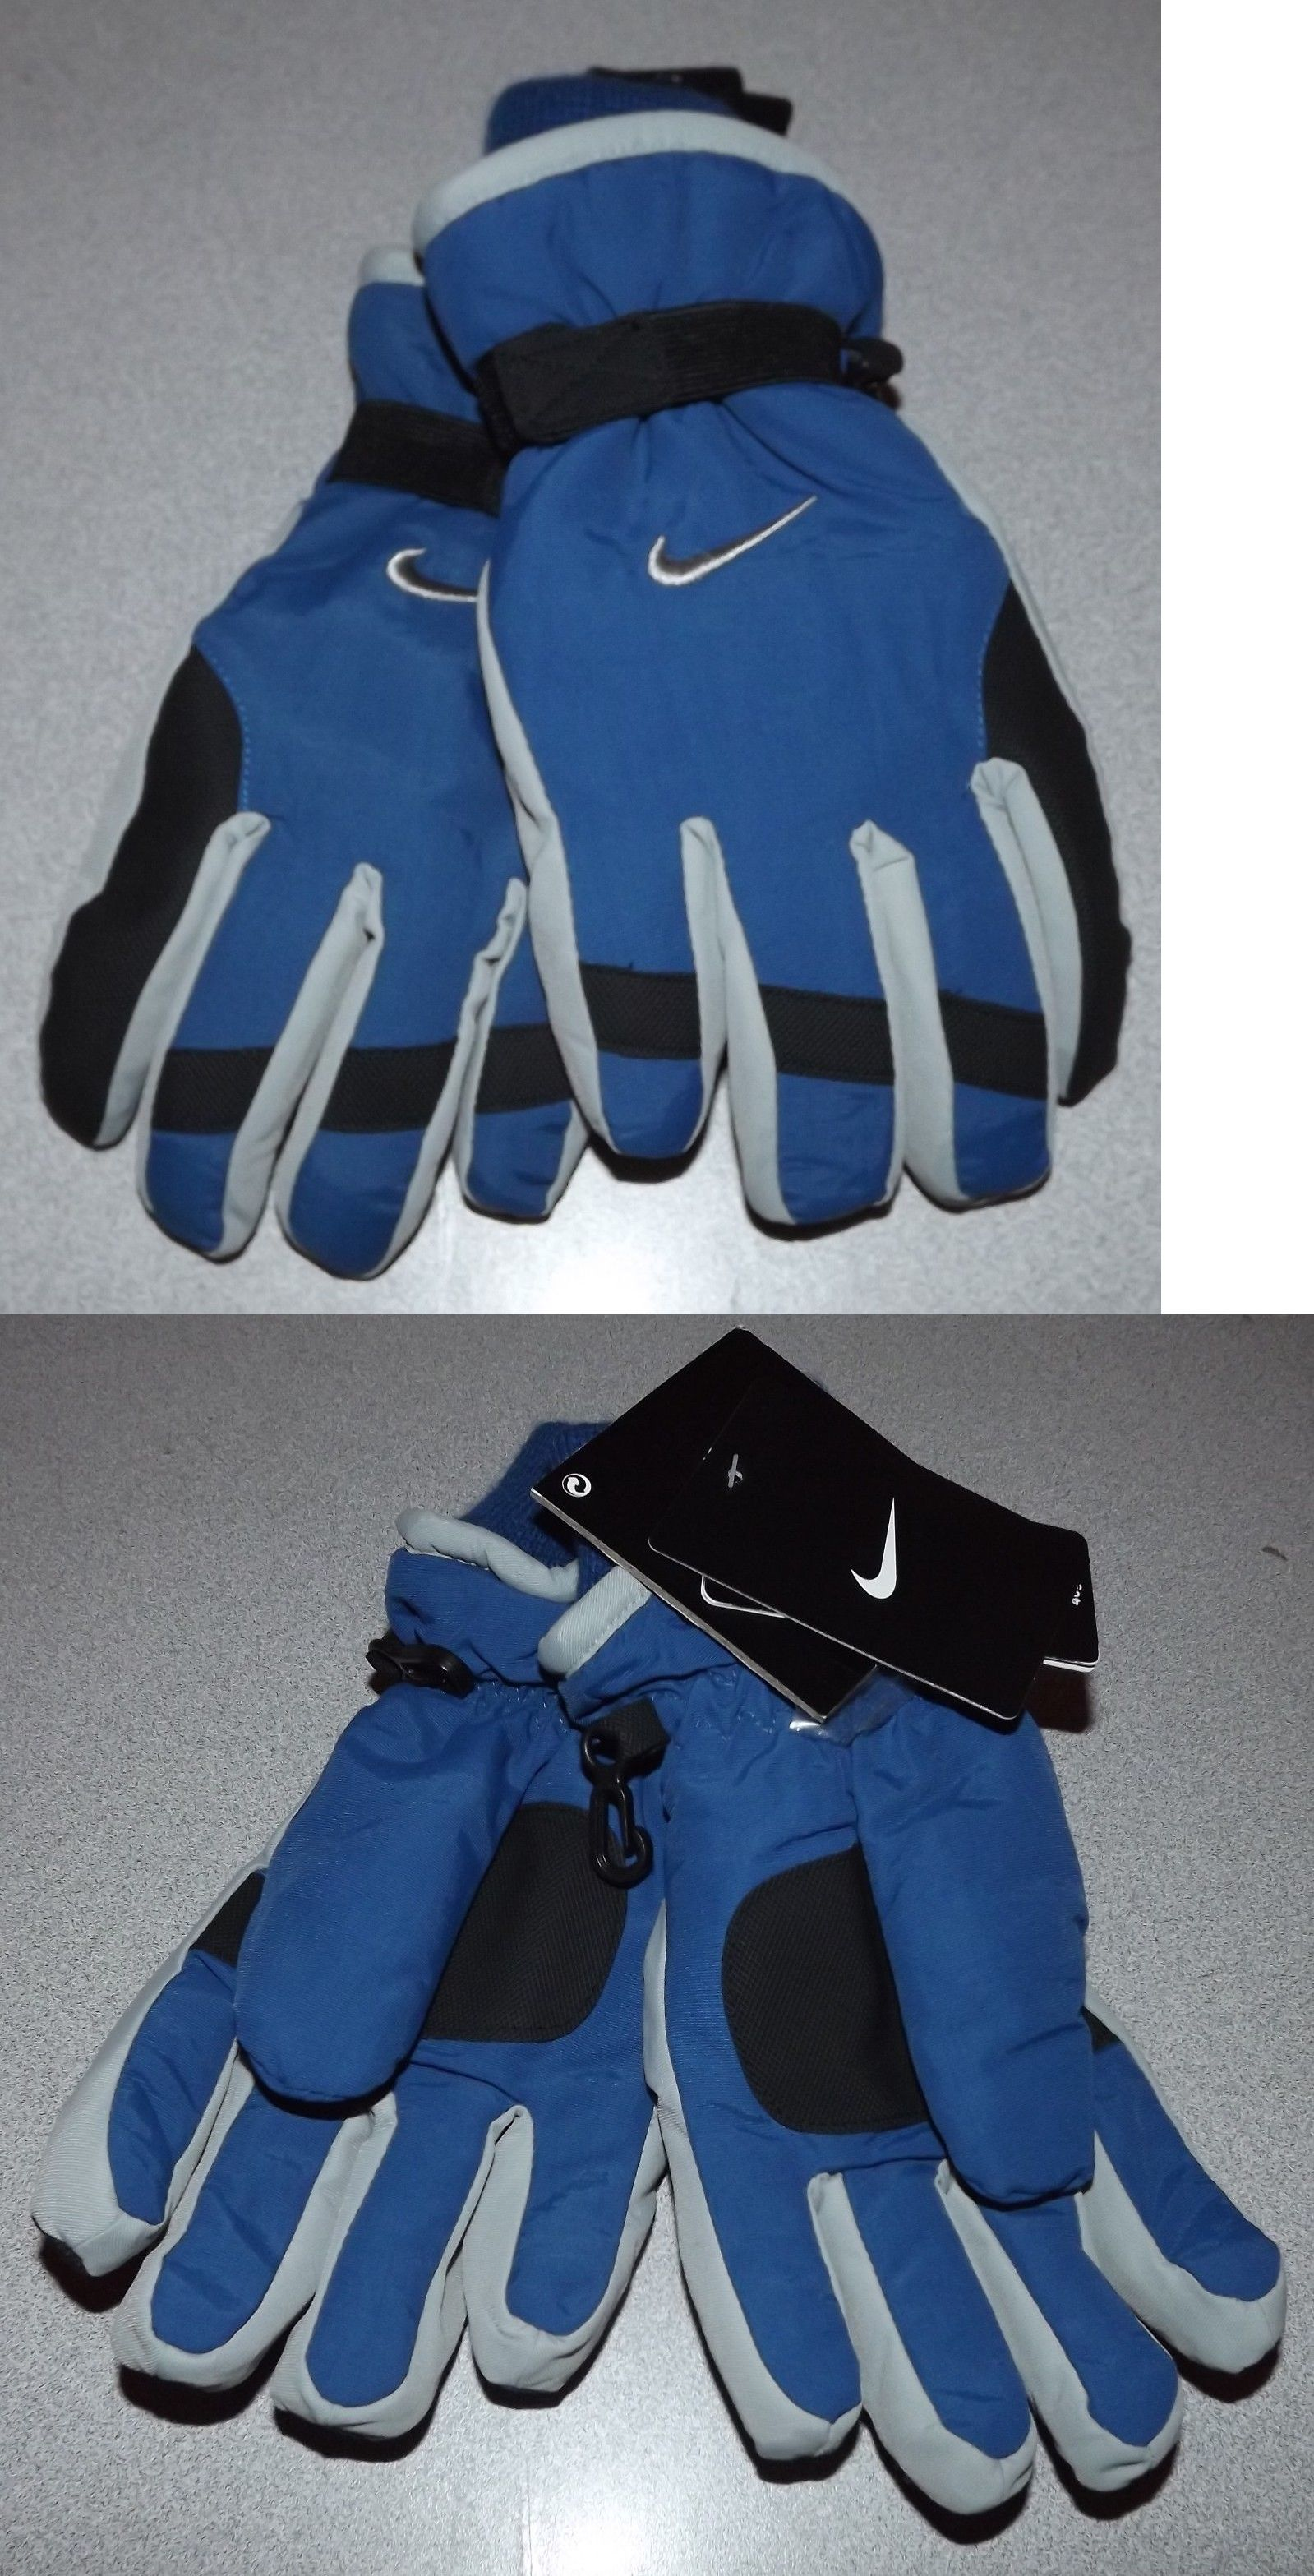 0fd50c986fc33a Gloves and Mittens 57885  Nike Boys Youth Ski Winter Gloves Gym Blue And  Gray Size 8-20 Nwt  28 -  BUY IT NOW ONLY   14 on  eBay  gloves  mittens   youth   ...